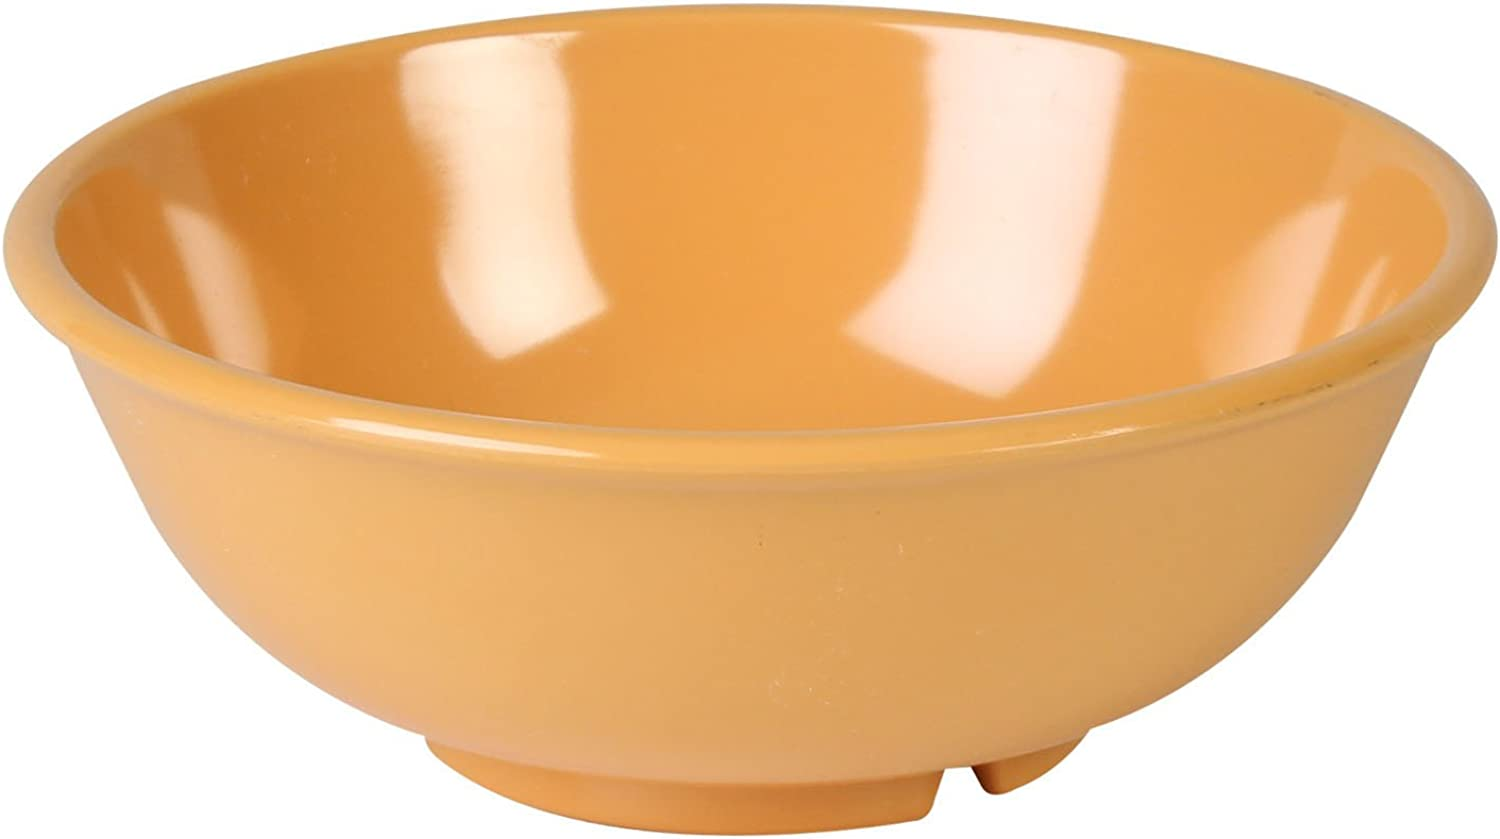 Excellanté Yellow Melamine Collection 7-1 2-Inch Salad Bowl, 24-Ounce, Yellow, 12-Piece